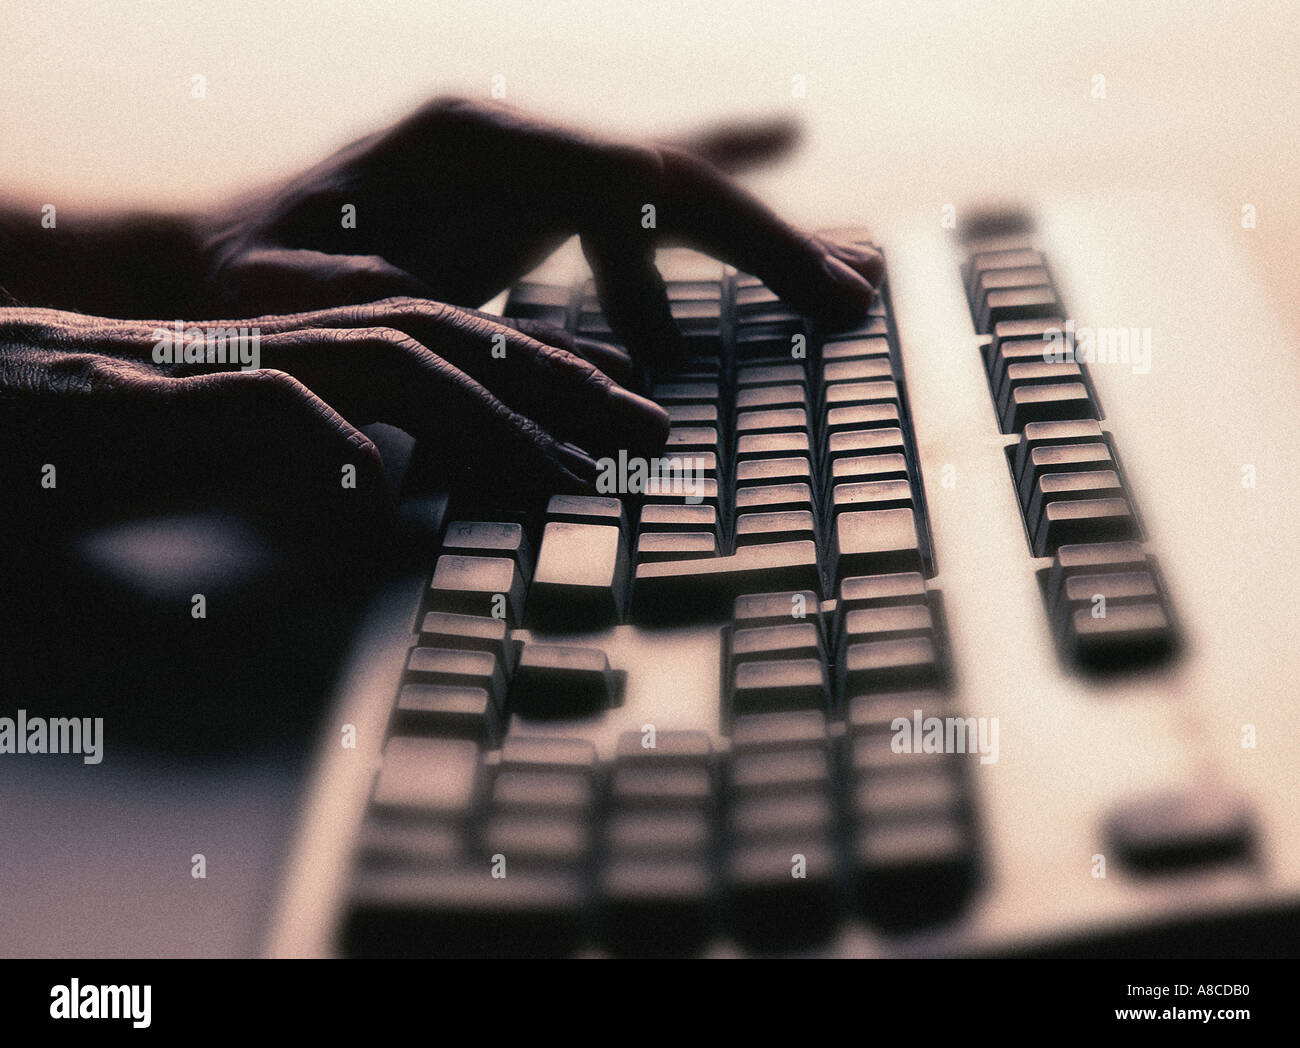 HANDS TYPING ON COMPUTER KEYBOARD - Stock Image